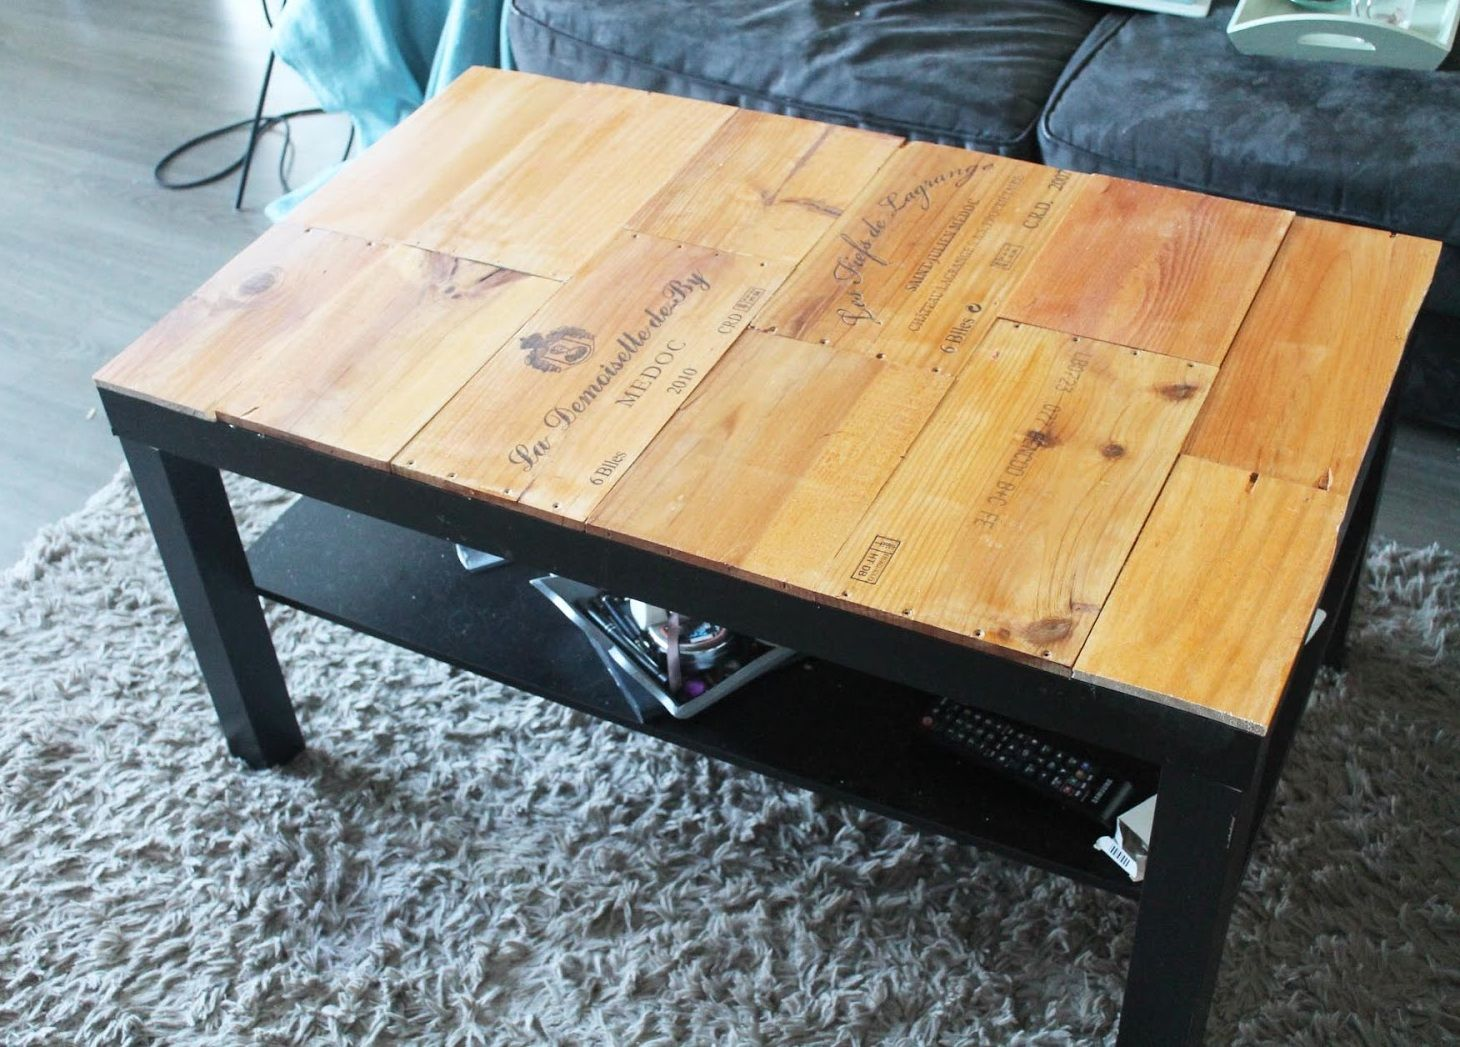 tuto customiser une table basse avec des caisses de vin. Black Bedroom Furniture Sets. Home Design Ideas